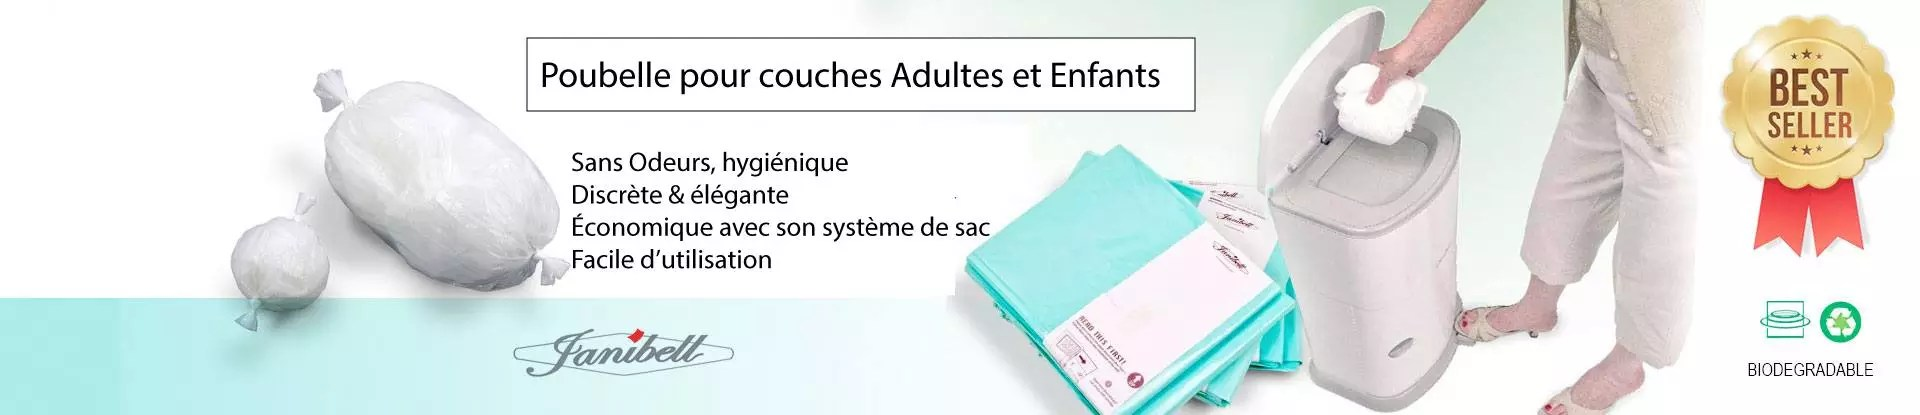 Echantillon Couche Adulte Diaper Disposal System